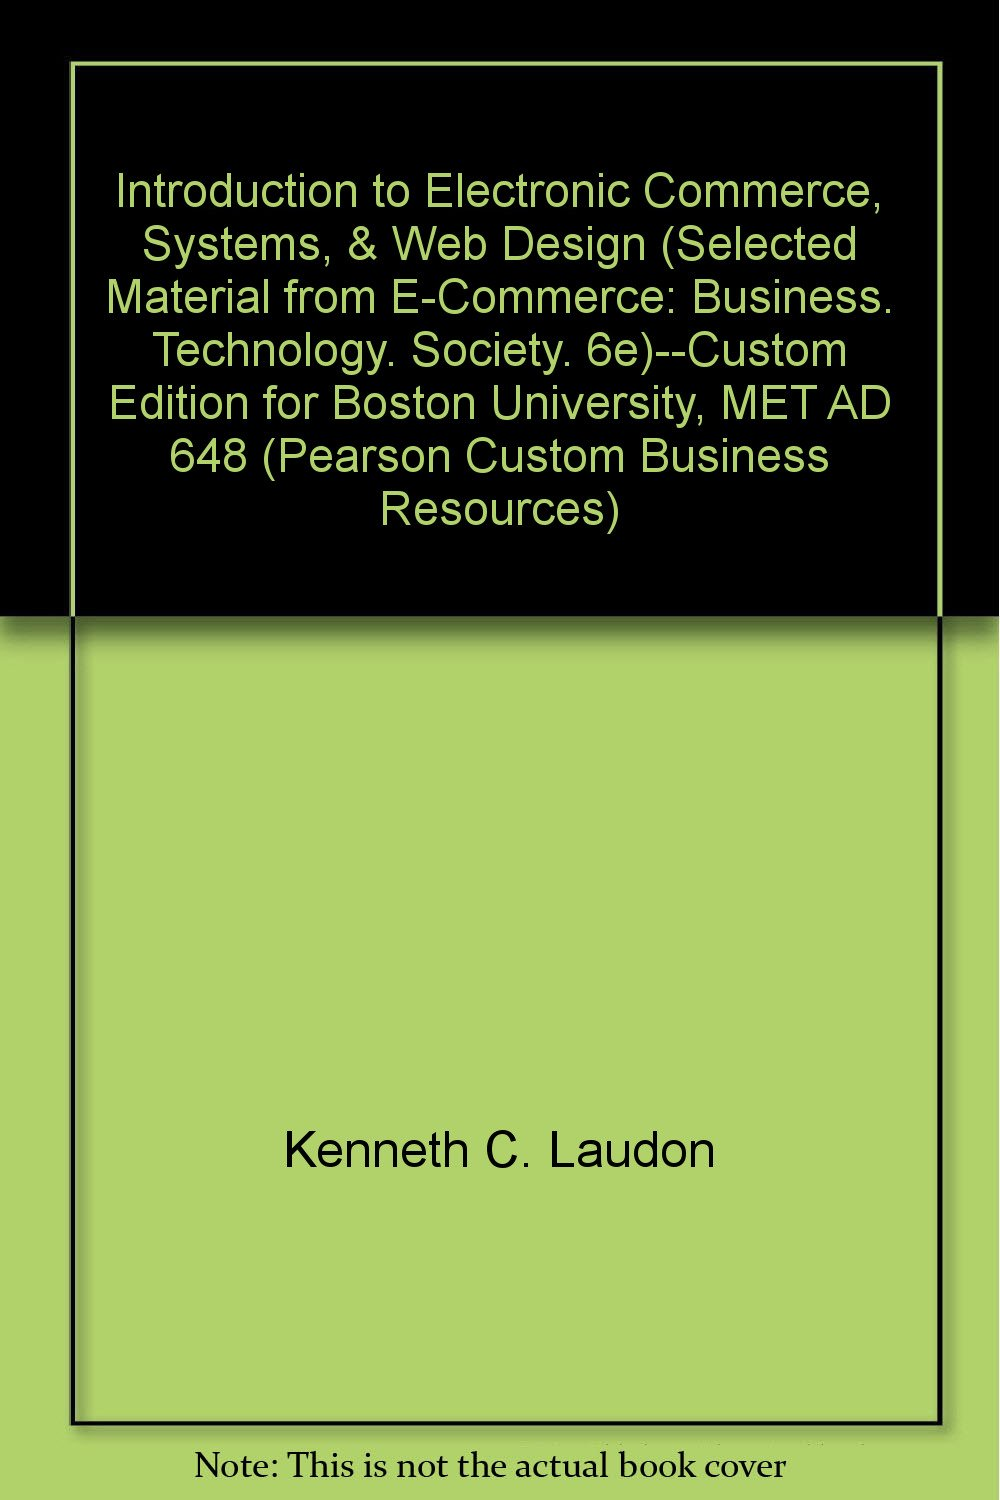 Introduction To Electronic Commerce Systems Web Design Selected Material From E Commerce Business Technology Society 6e Custom Edition For Boston University Met Ad 648 Pearson Custom Business Resources Kenneth C Laudon Carol Guercio